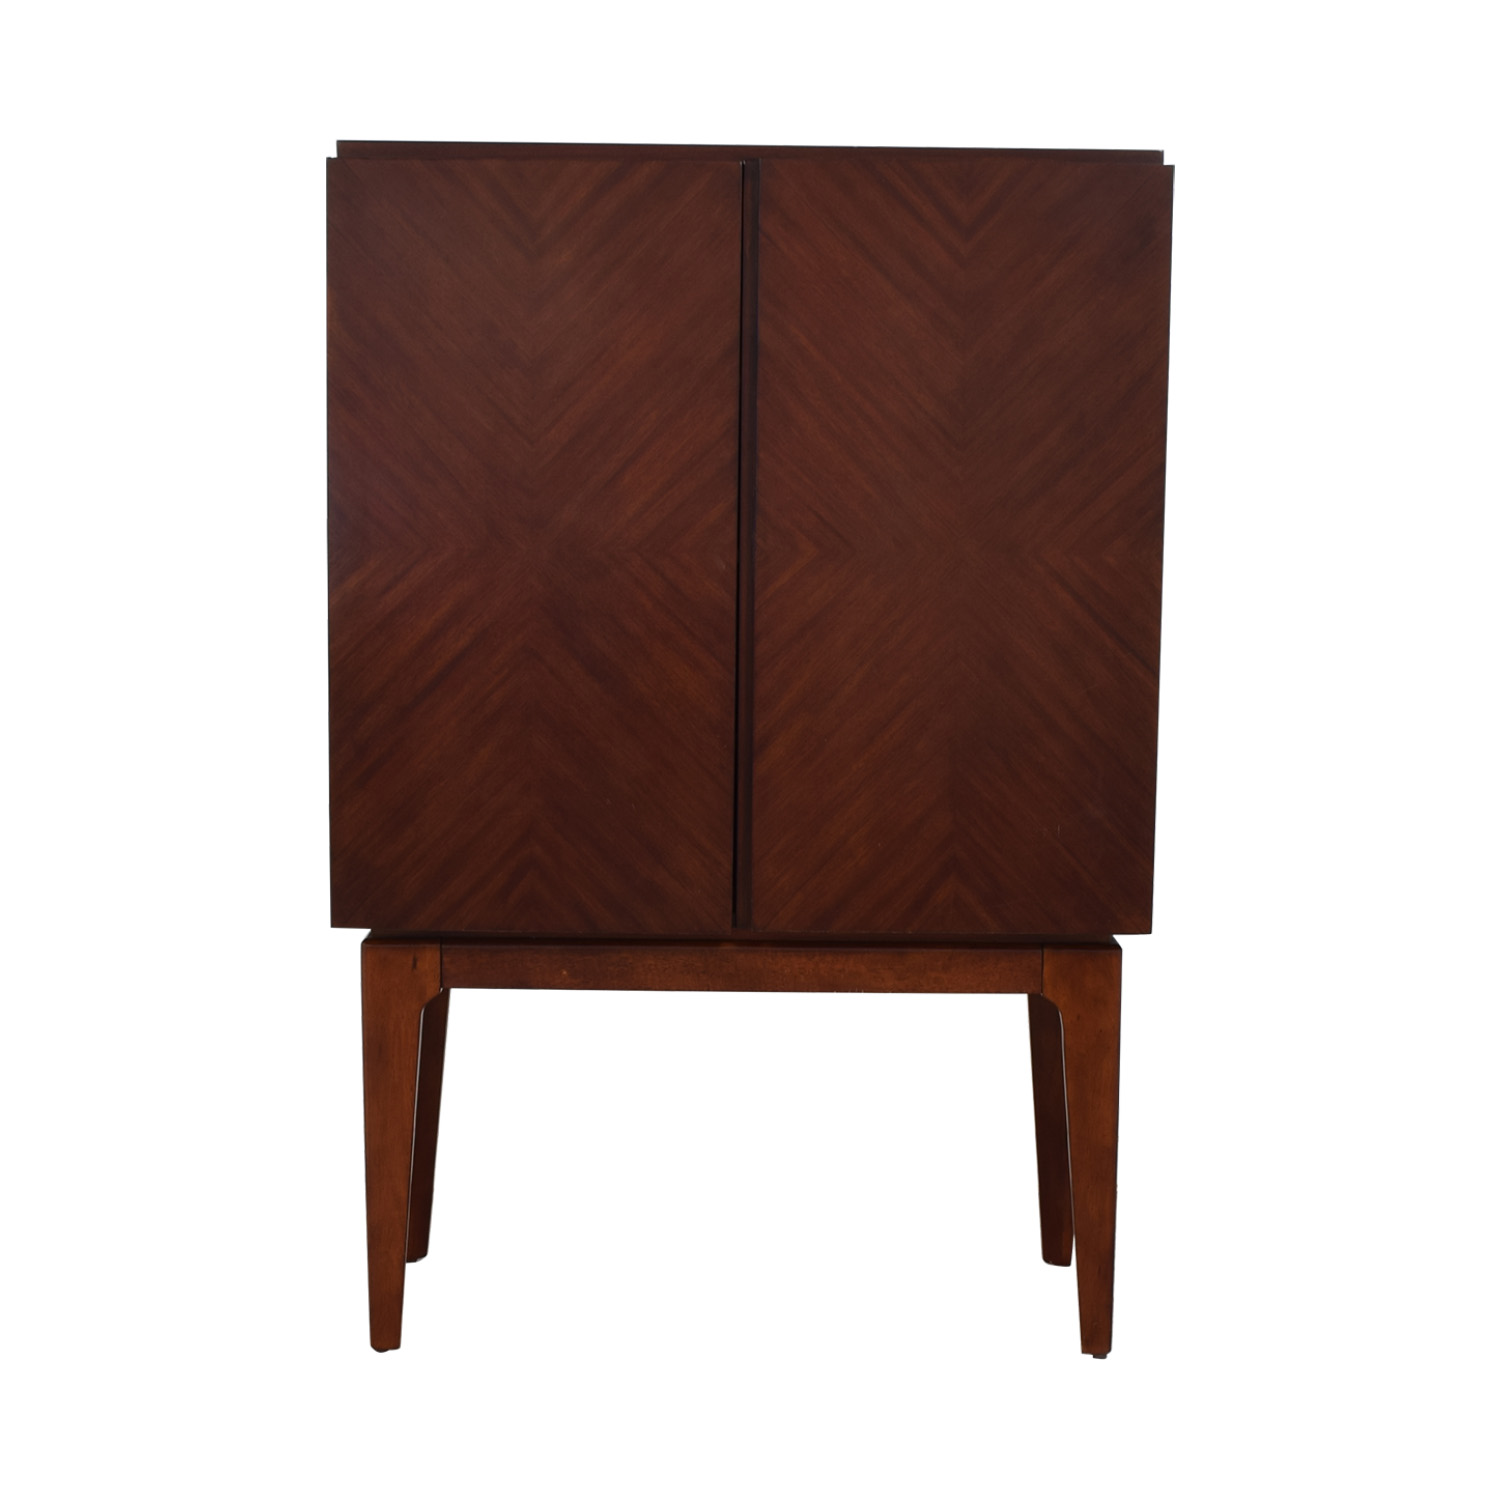 Mitchell Gold + Bob Williams Mitchell Gold + Bob Williams Cabinet Armoire on sale